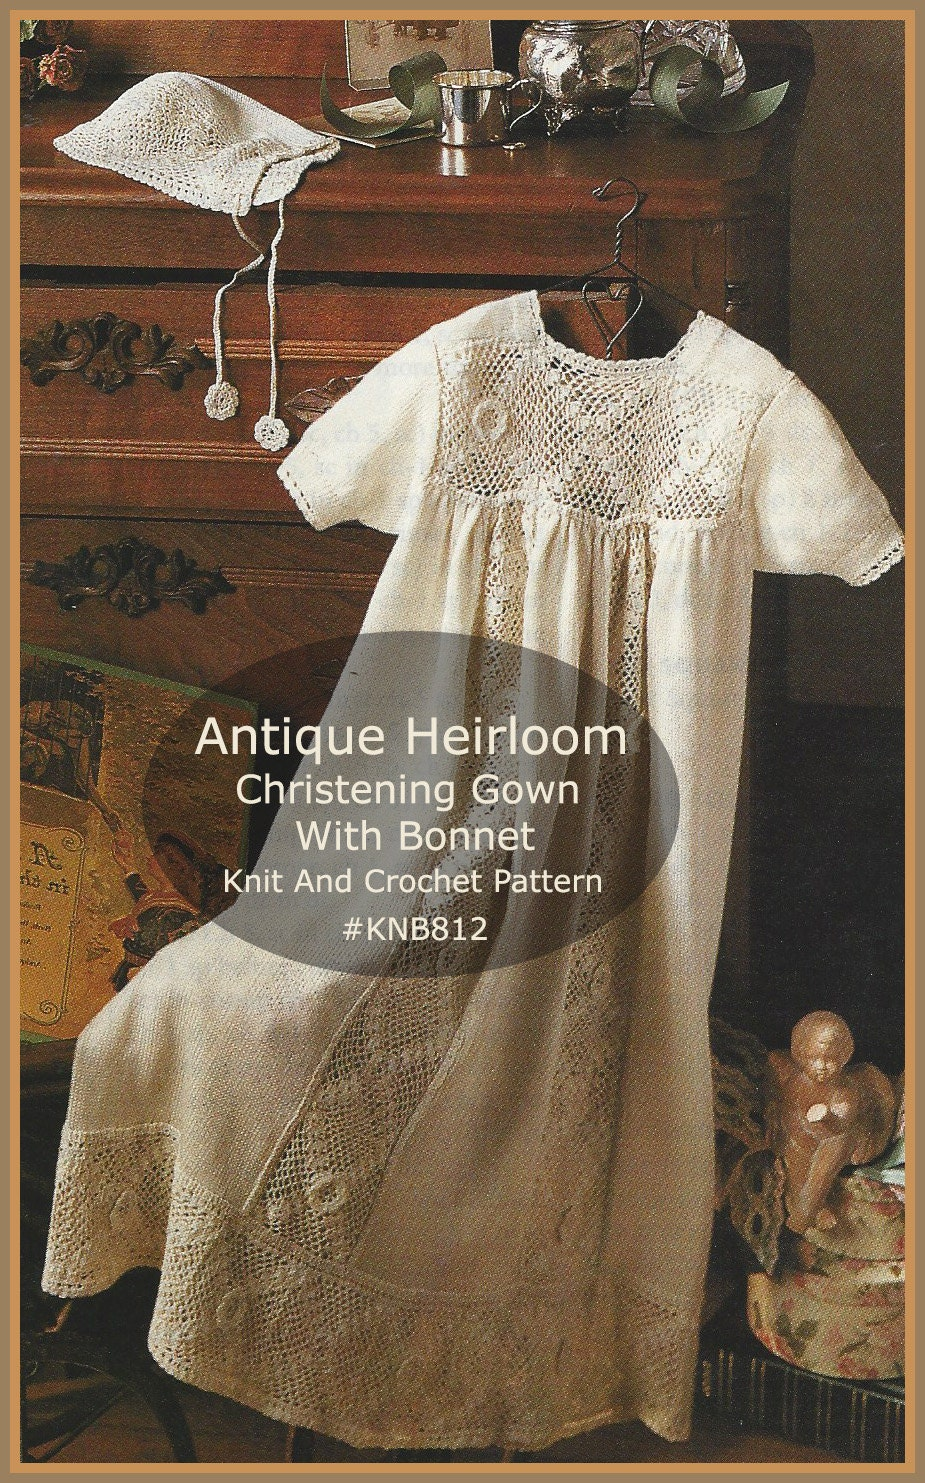 RARE Heirloom Christening Gown Knit And CrochetBeautiful